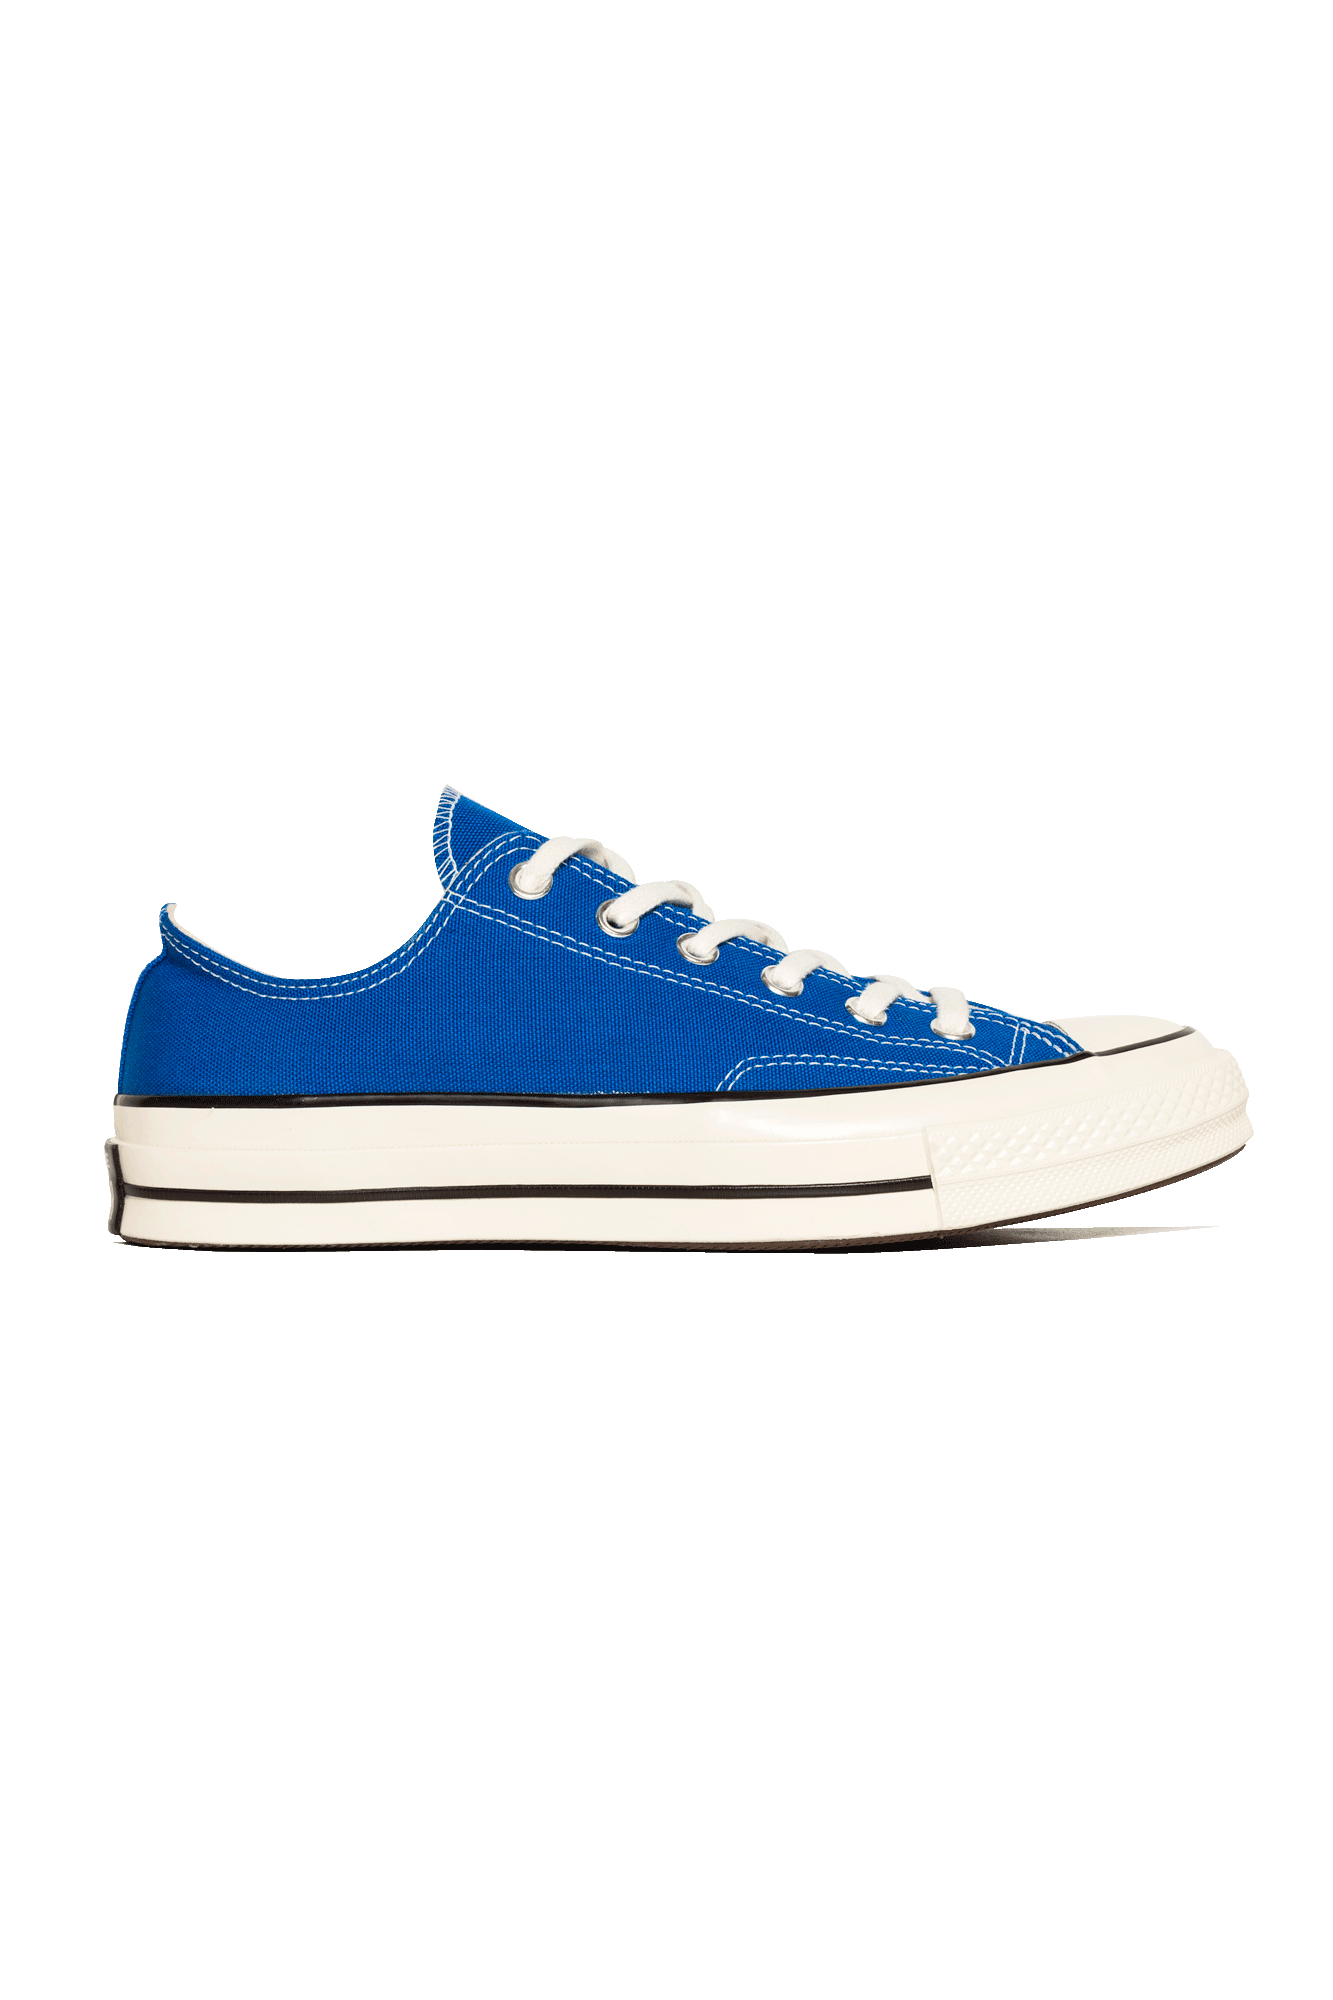 Converse Sneakers All star prem OX 1970's canvas Blu 146976C#000#C0007#4,5 - One Block Down